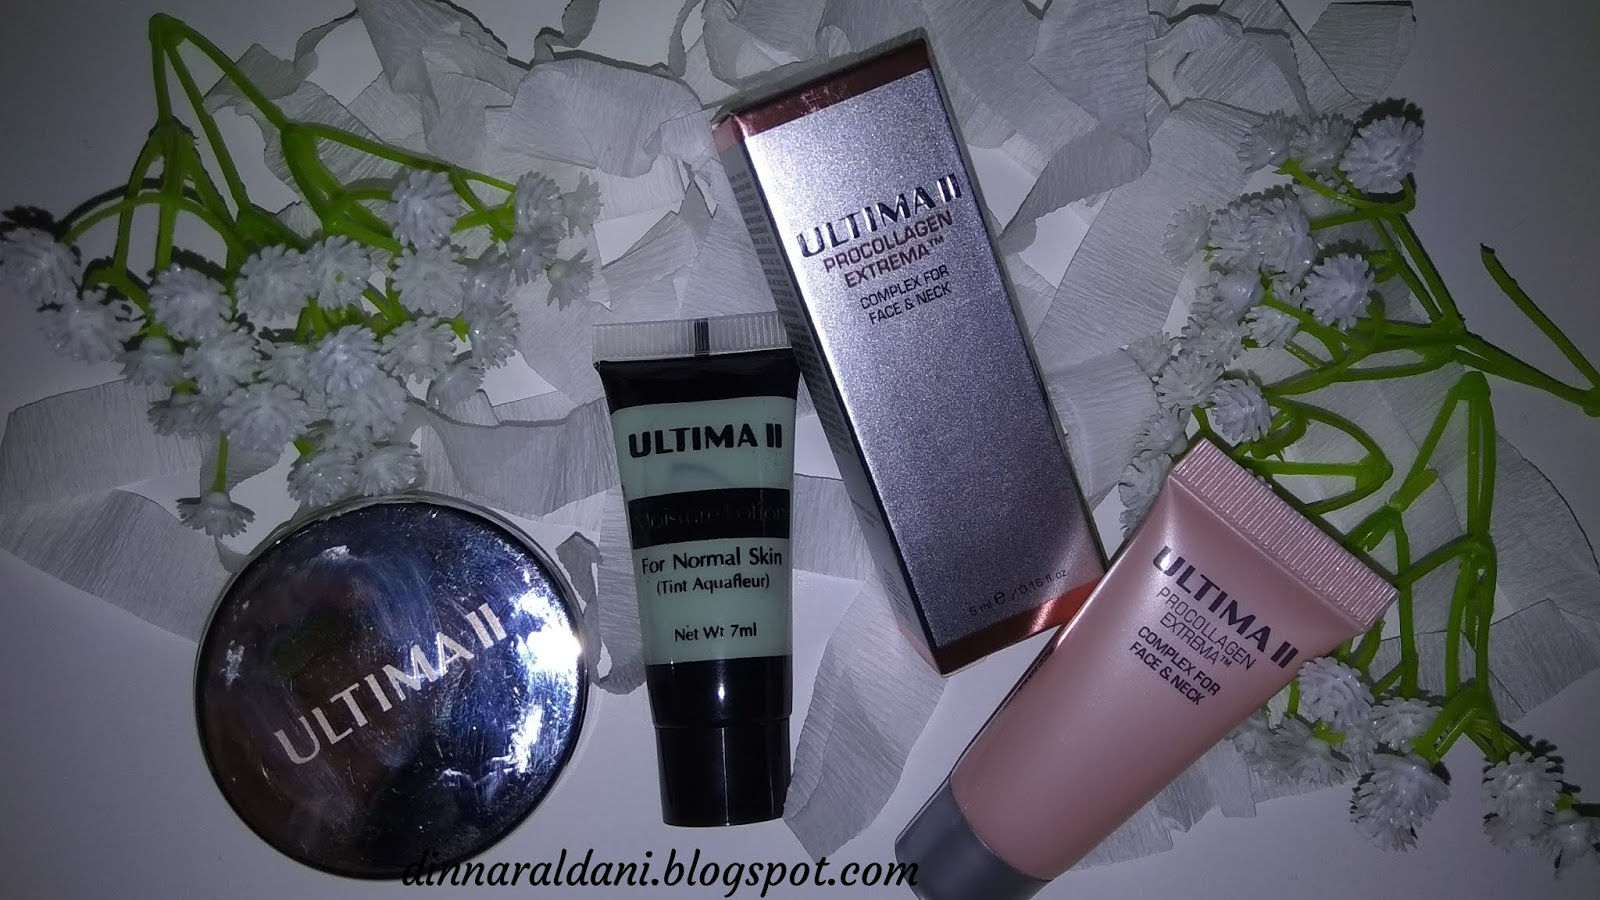 Review Ultima Ii Delicate Translucent Face Powder With Moisturizer 24g For More Information Kunjungi Di Sini Ya